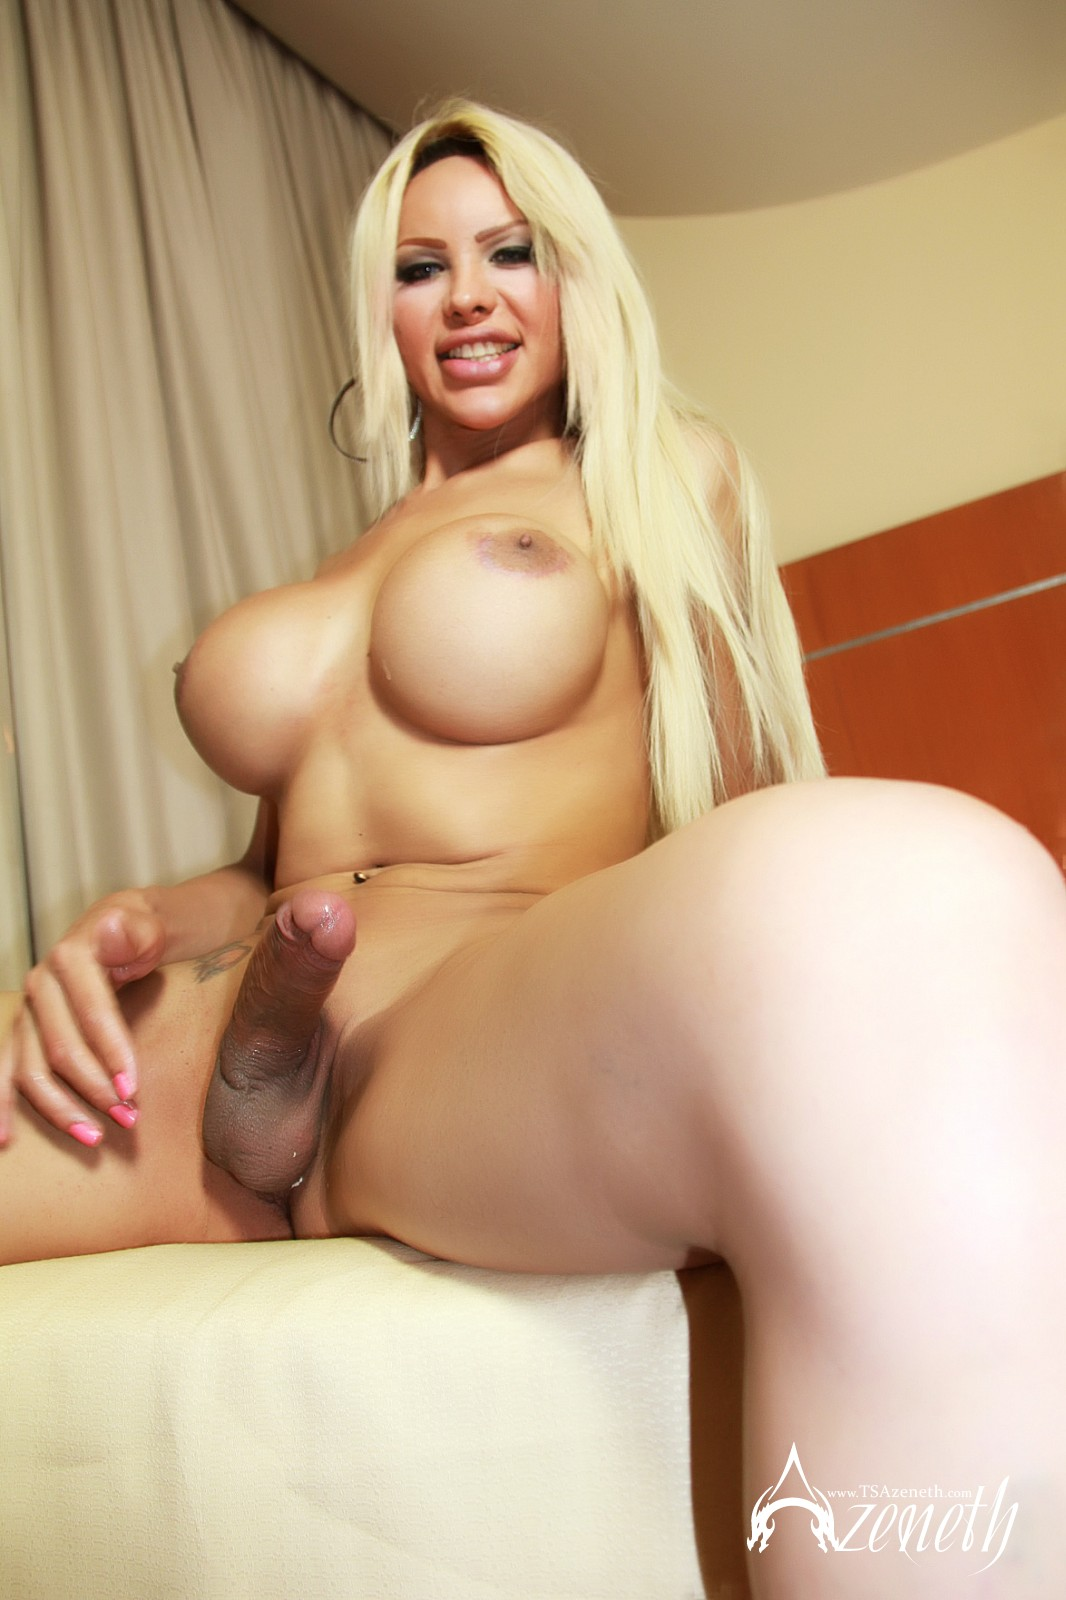 Voluptuous Huge Cock Shemale 56